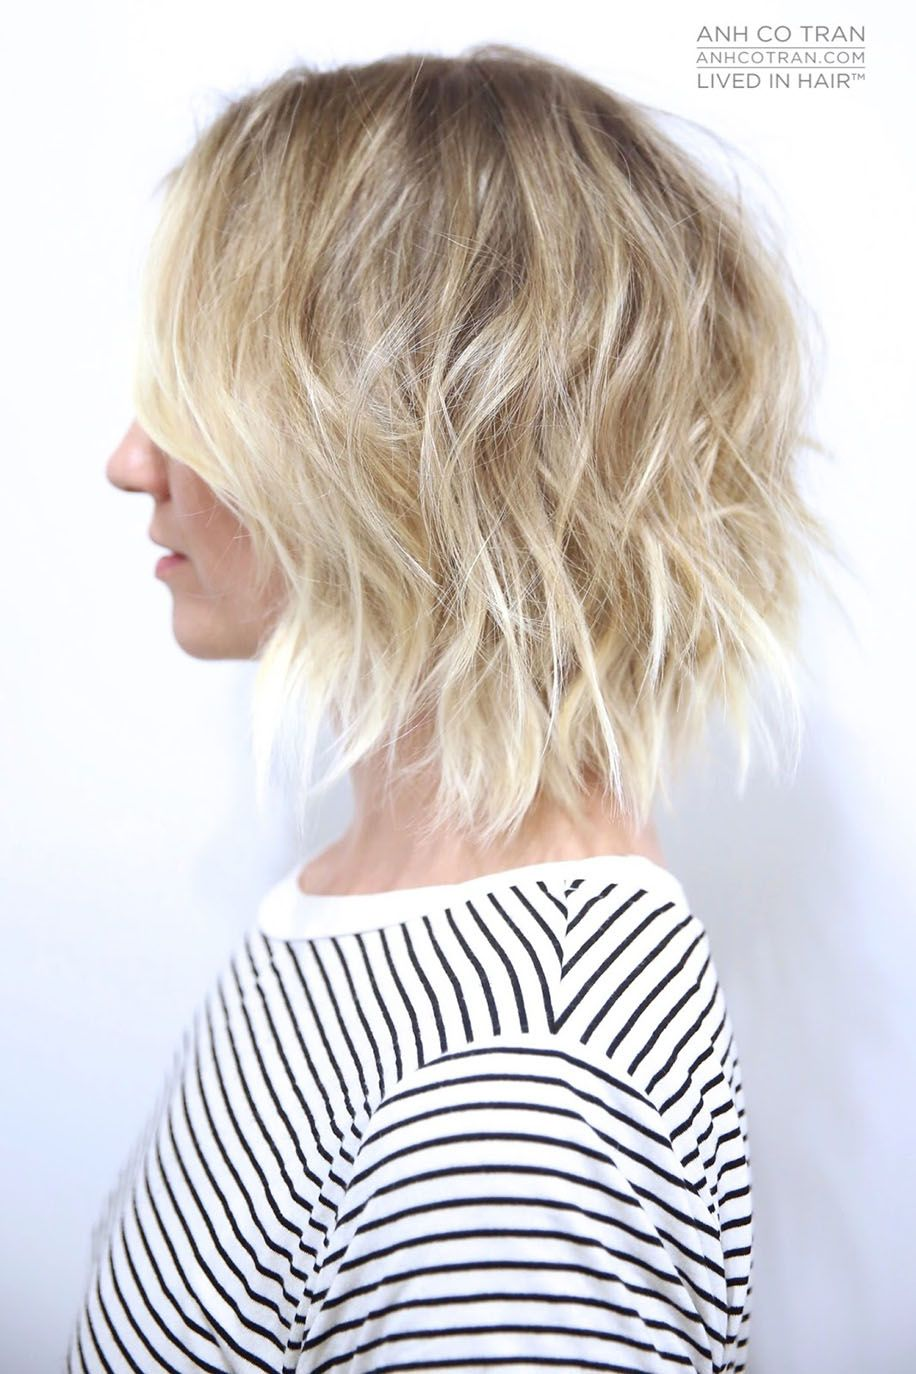 9 Seriously Cute Ways To Style Short Hair Pinterest Short Hair